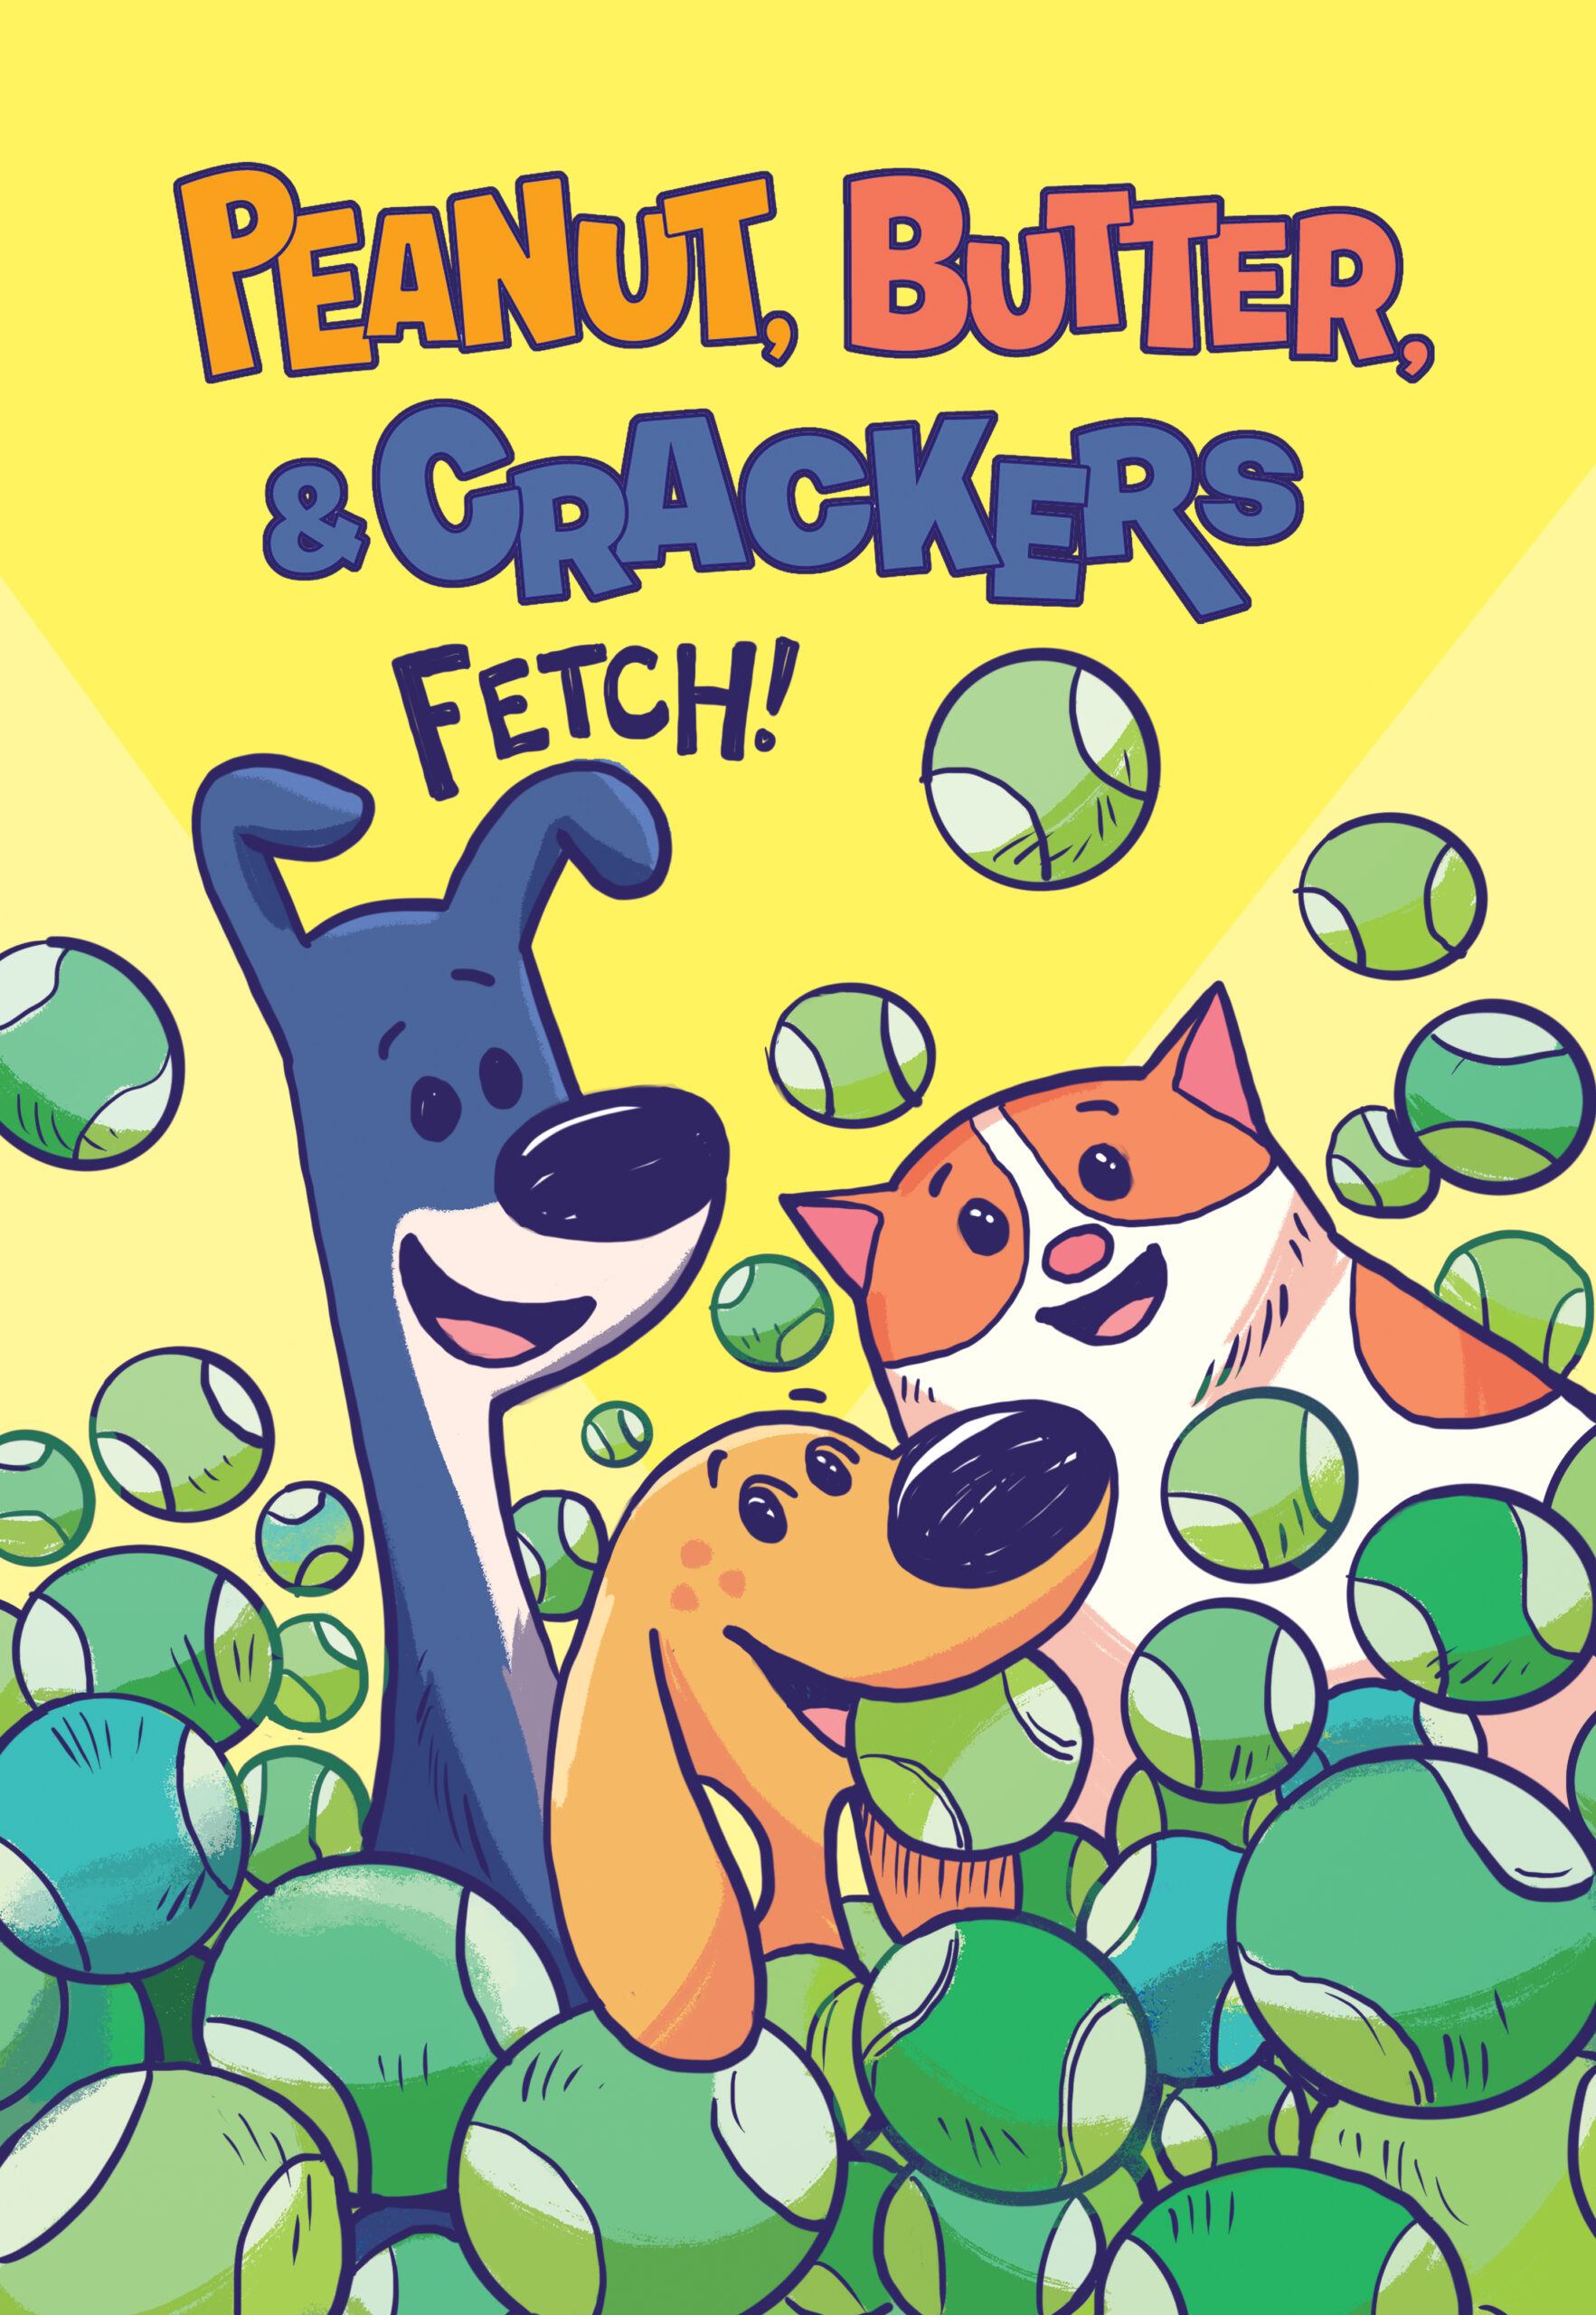 Cover of Book 2, Fetch!